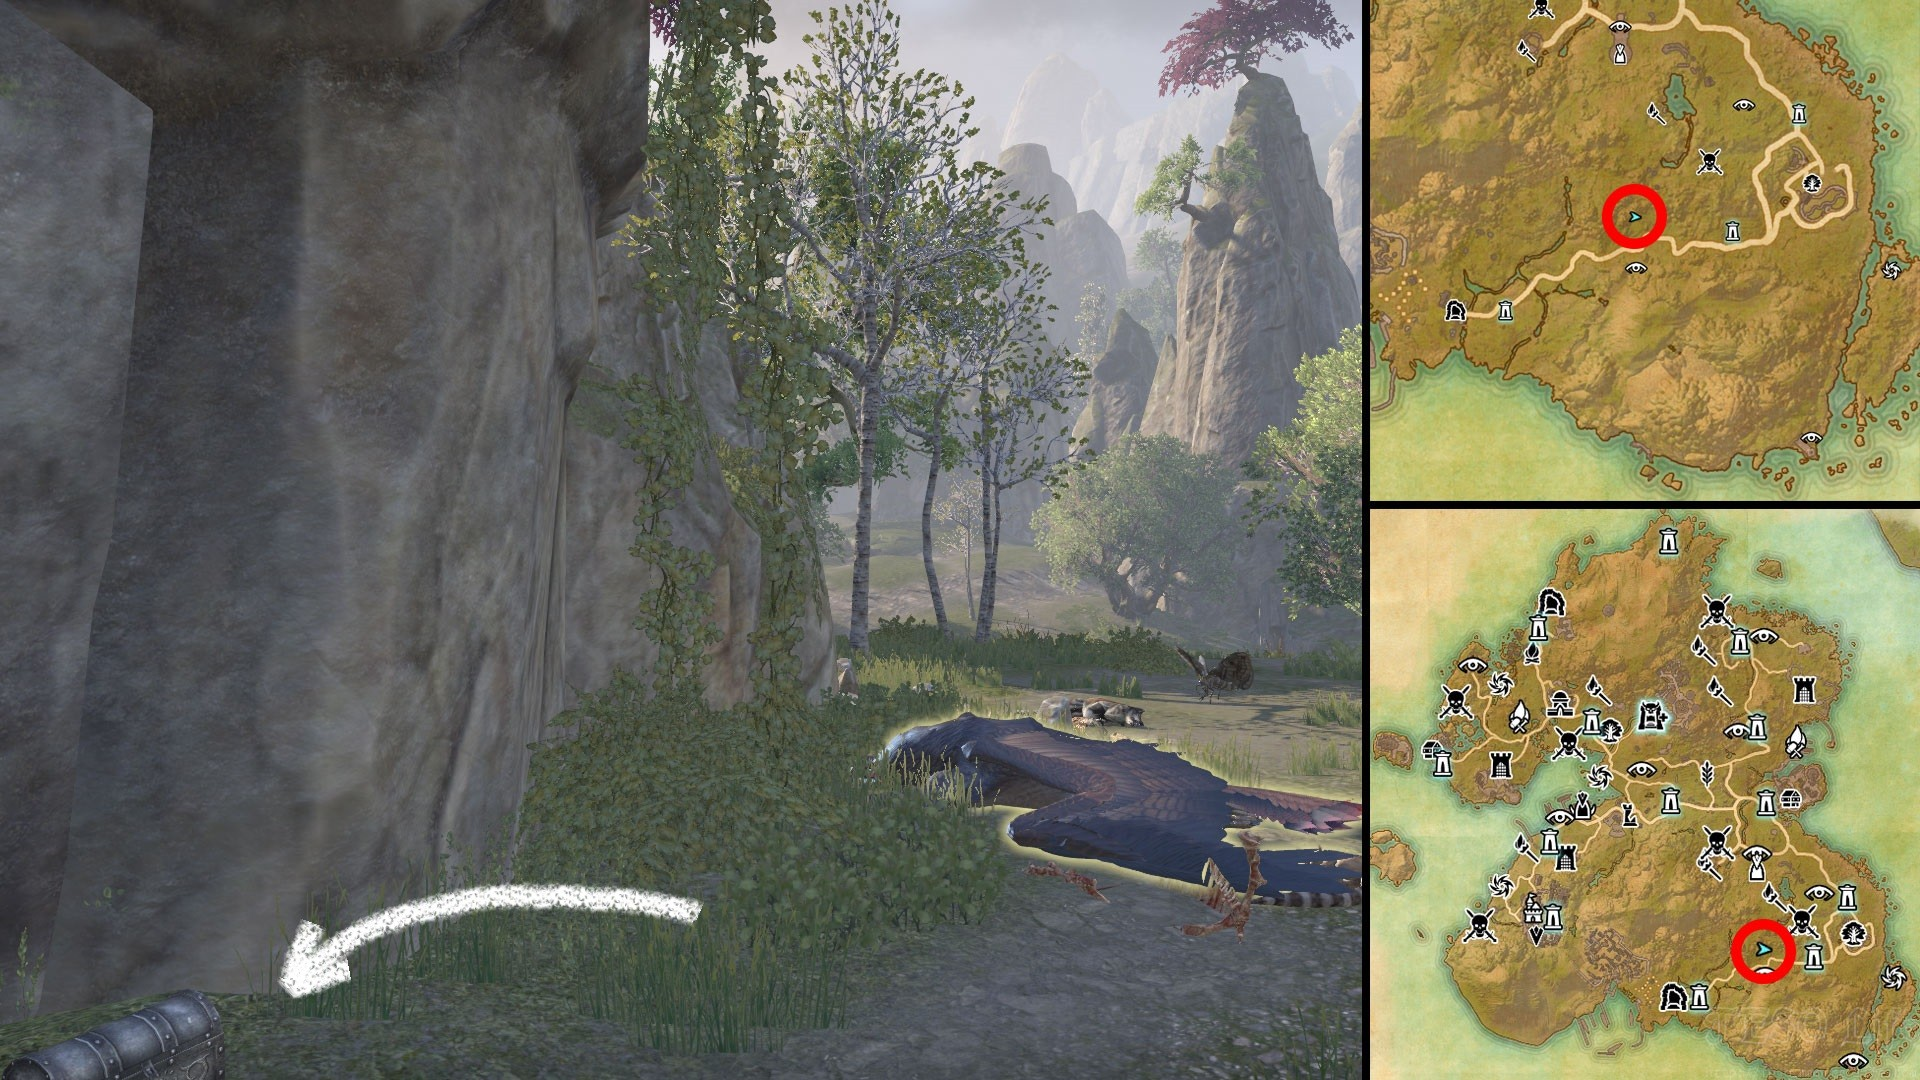 ESO Ever Filling Chalice Summerset Relic Location